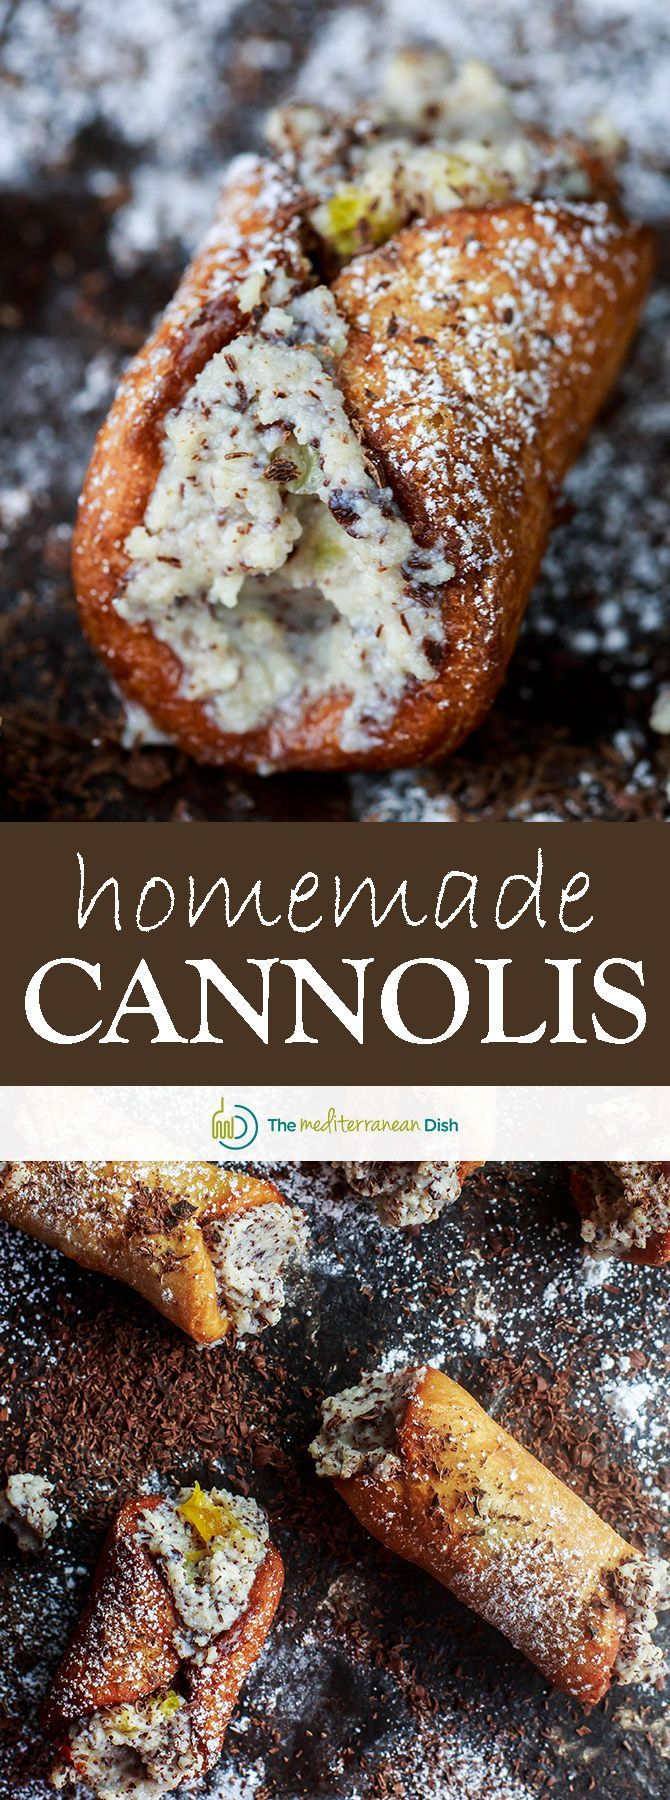 Recipe (How to Make Cannolis) Cannoli Recipe (How to Make Cannolis) | The Mediterranean Dish. A foolproof recipe for Italian cannolis (shells and filling). Seriously dreamy, perfectly crisp shells filled with a ricotta and chocolate mixture. Tutorial with step-by-step photos included! See it today on Cannoli Recip...